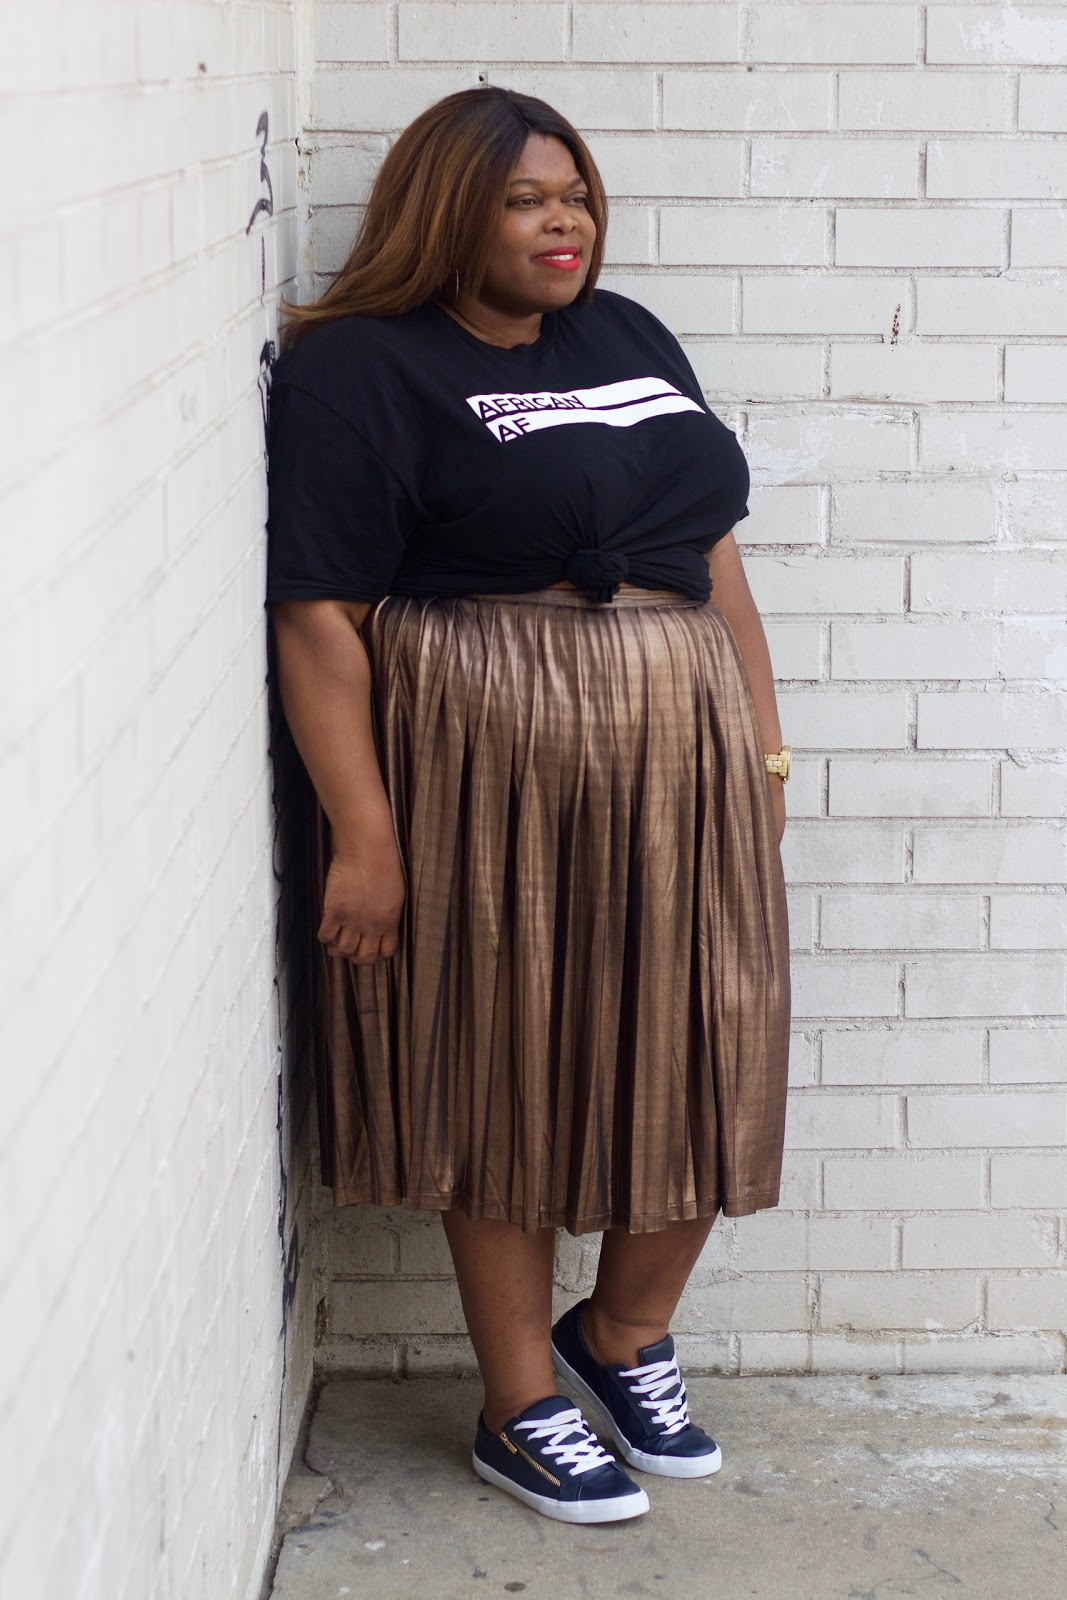 dc plus size style nigerian blogger